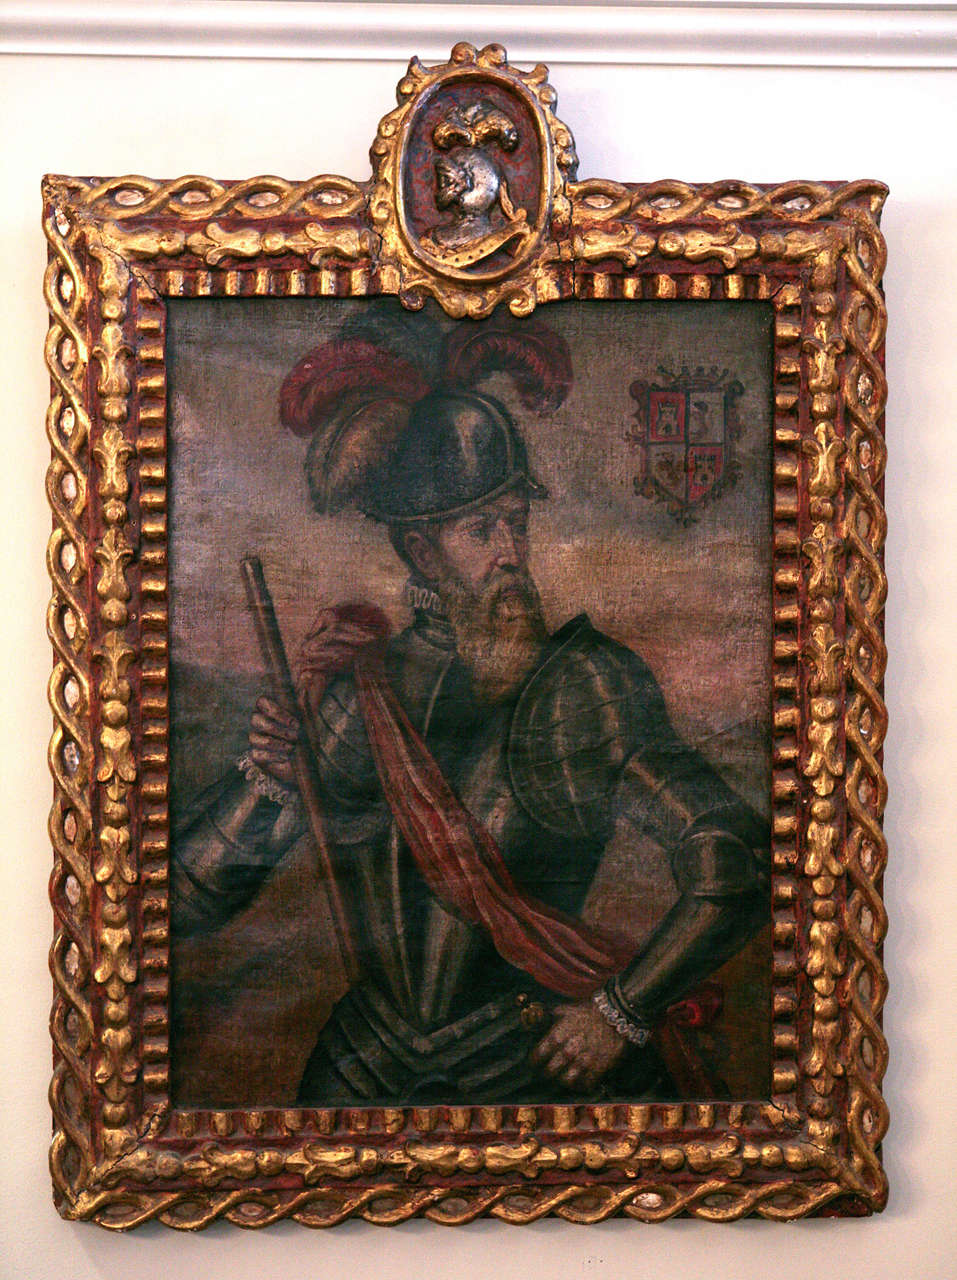 Conquistador painting believed to be Francisco Pizarro.  Painting in typical Peruvian frame.  From the Spanish Colonial period, 1520-1820.  Cuzco school artist unknown.